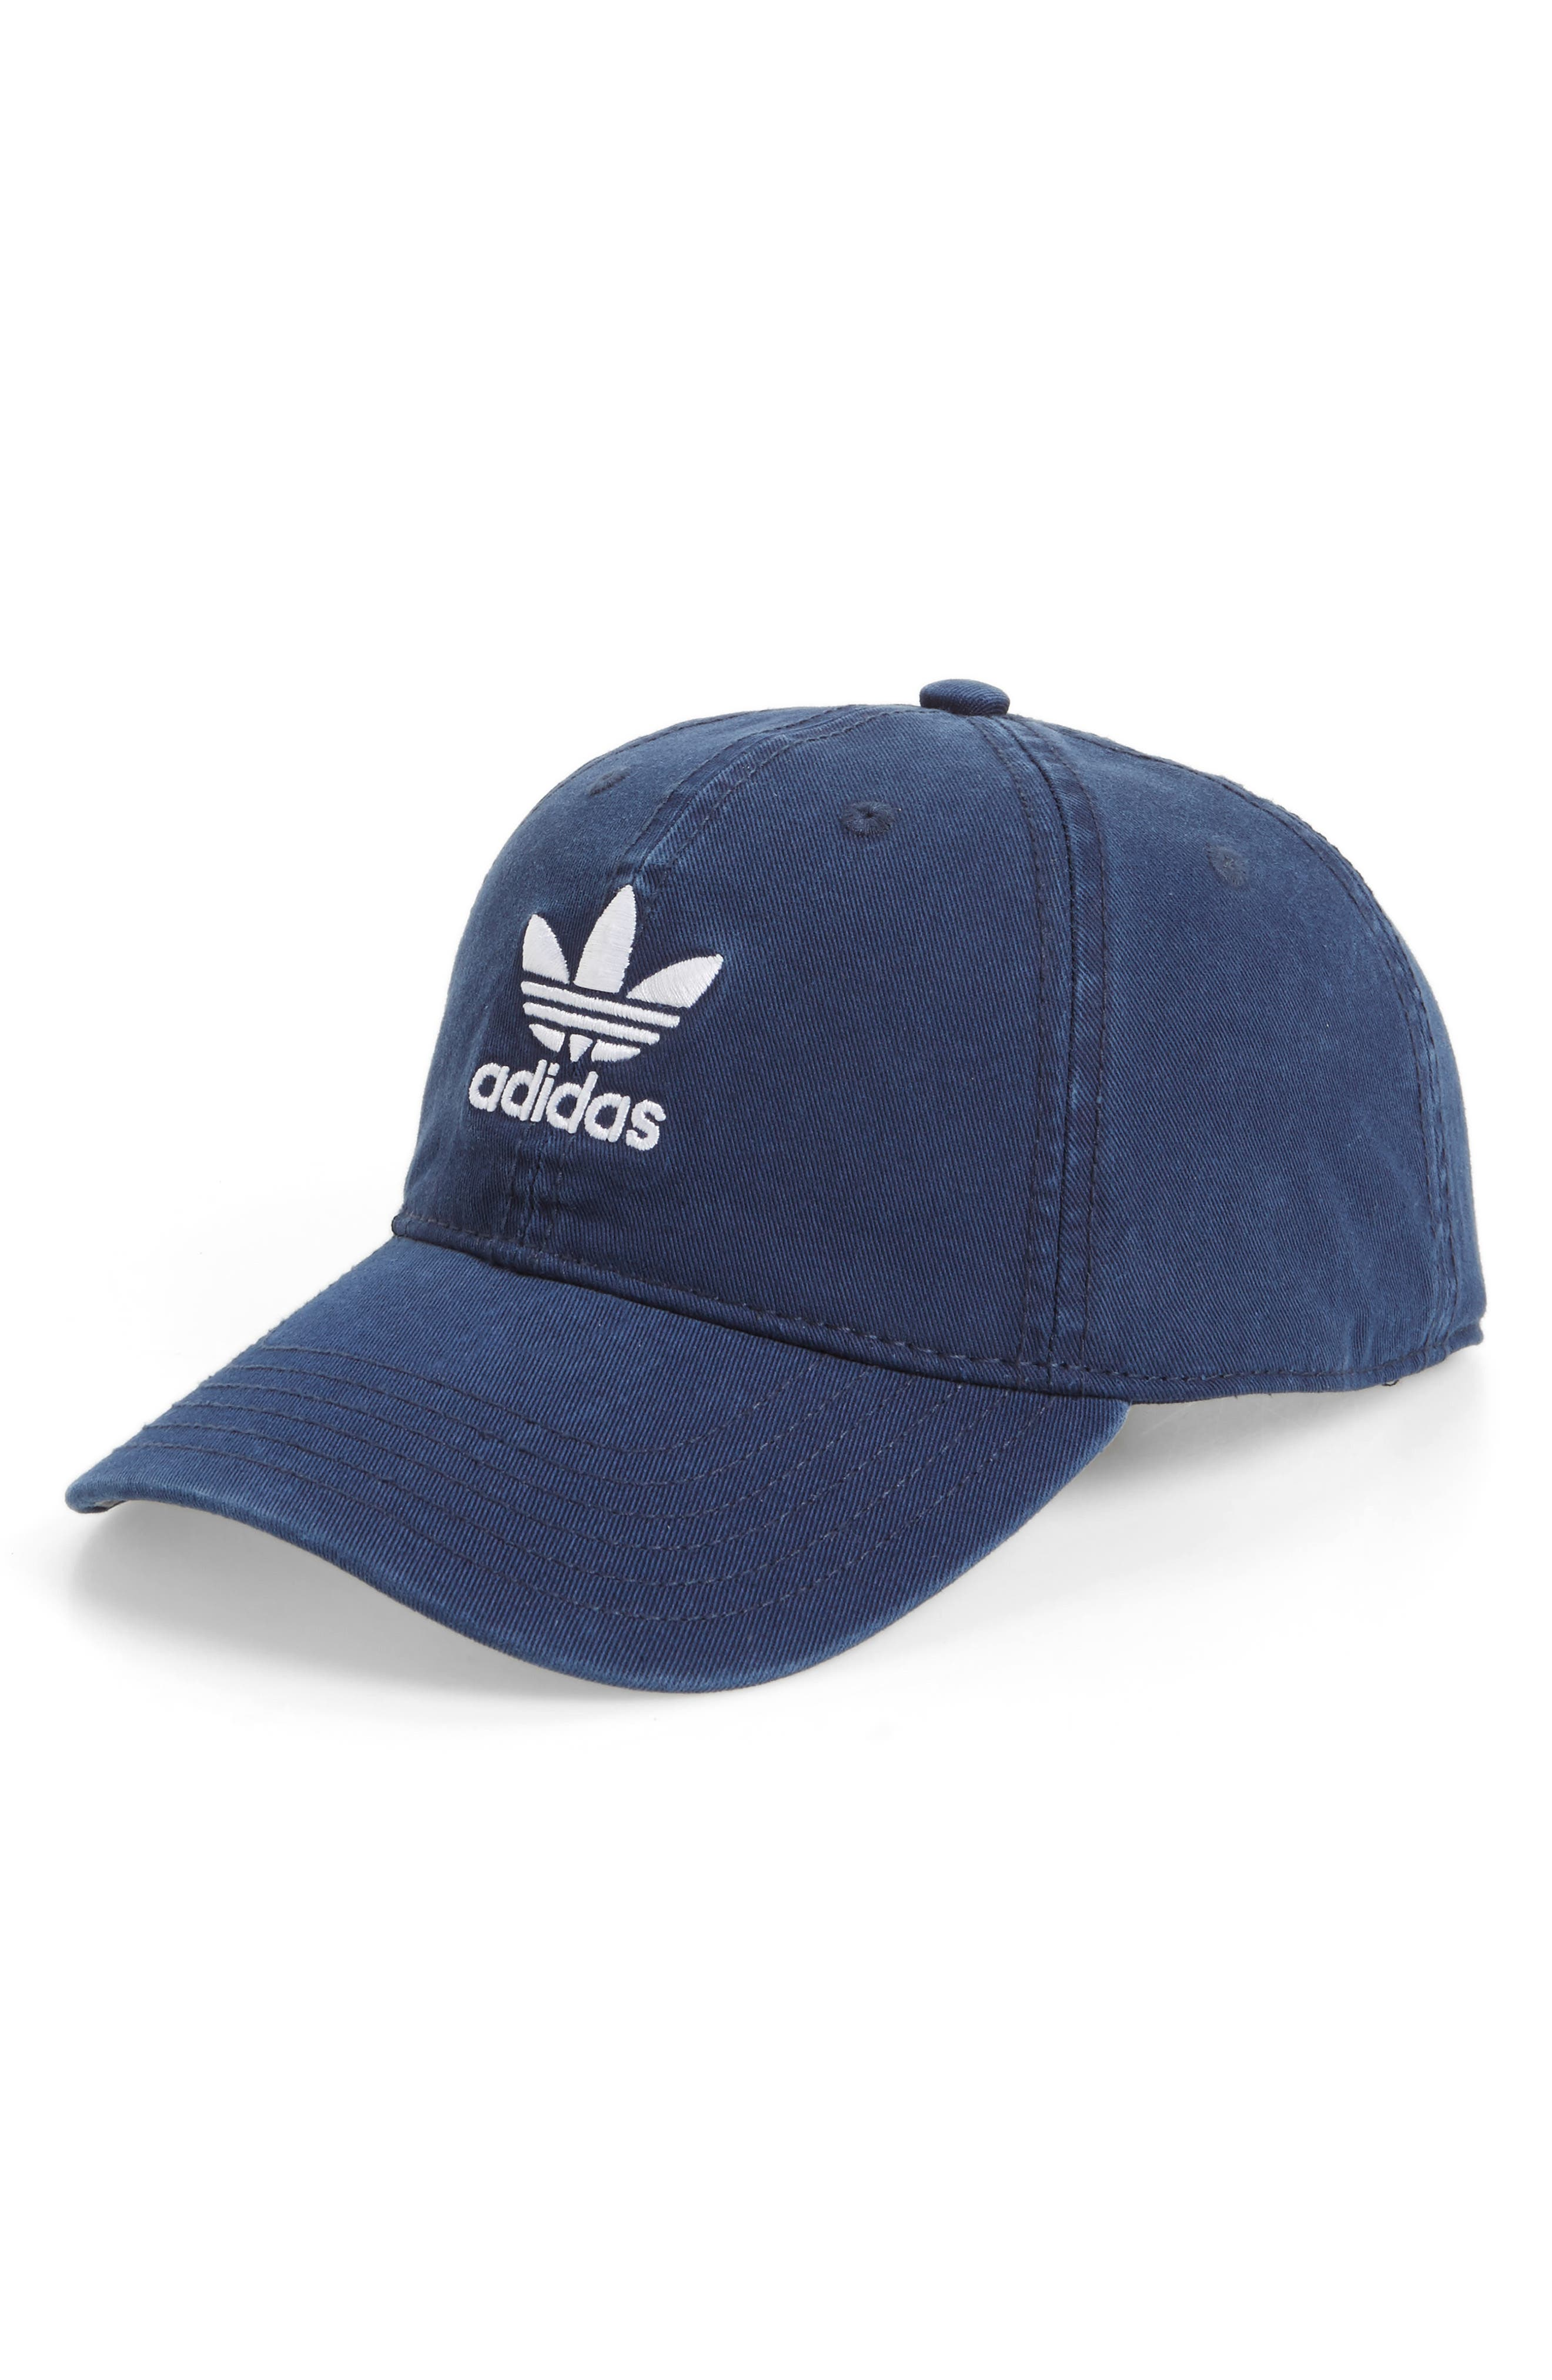 ADIDAS ORIGINALS Relaxed Baseball Cap, Main, color, NAVY